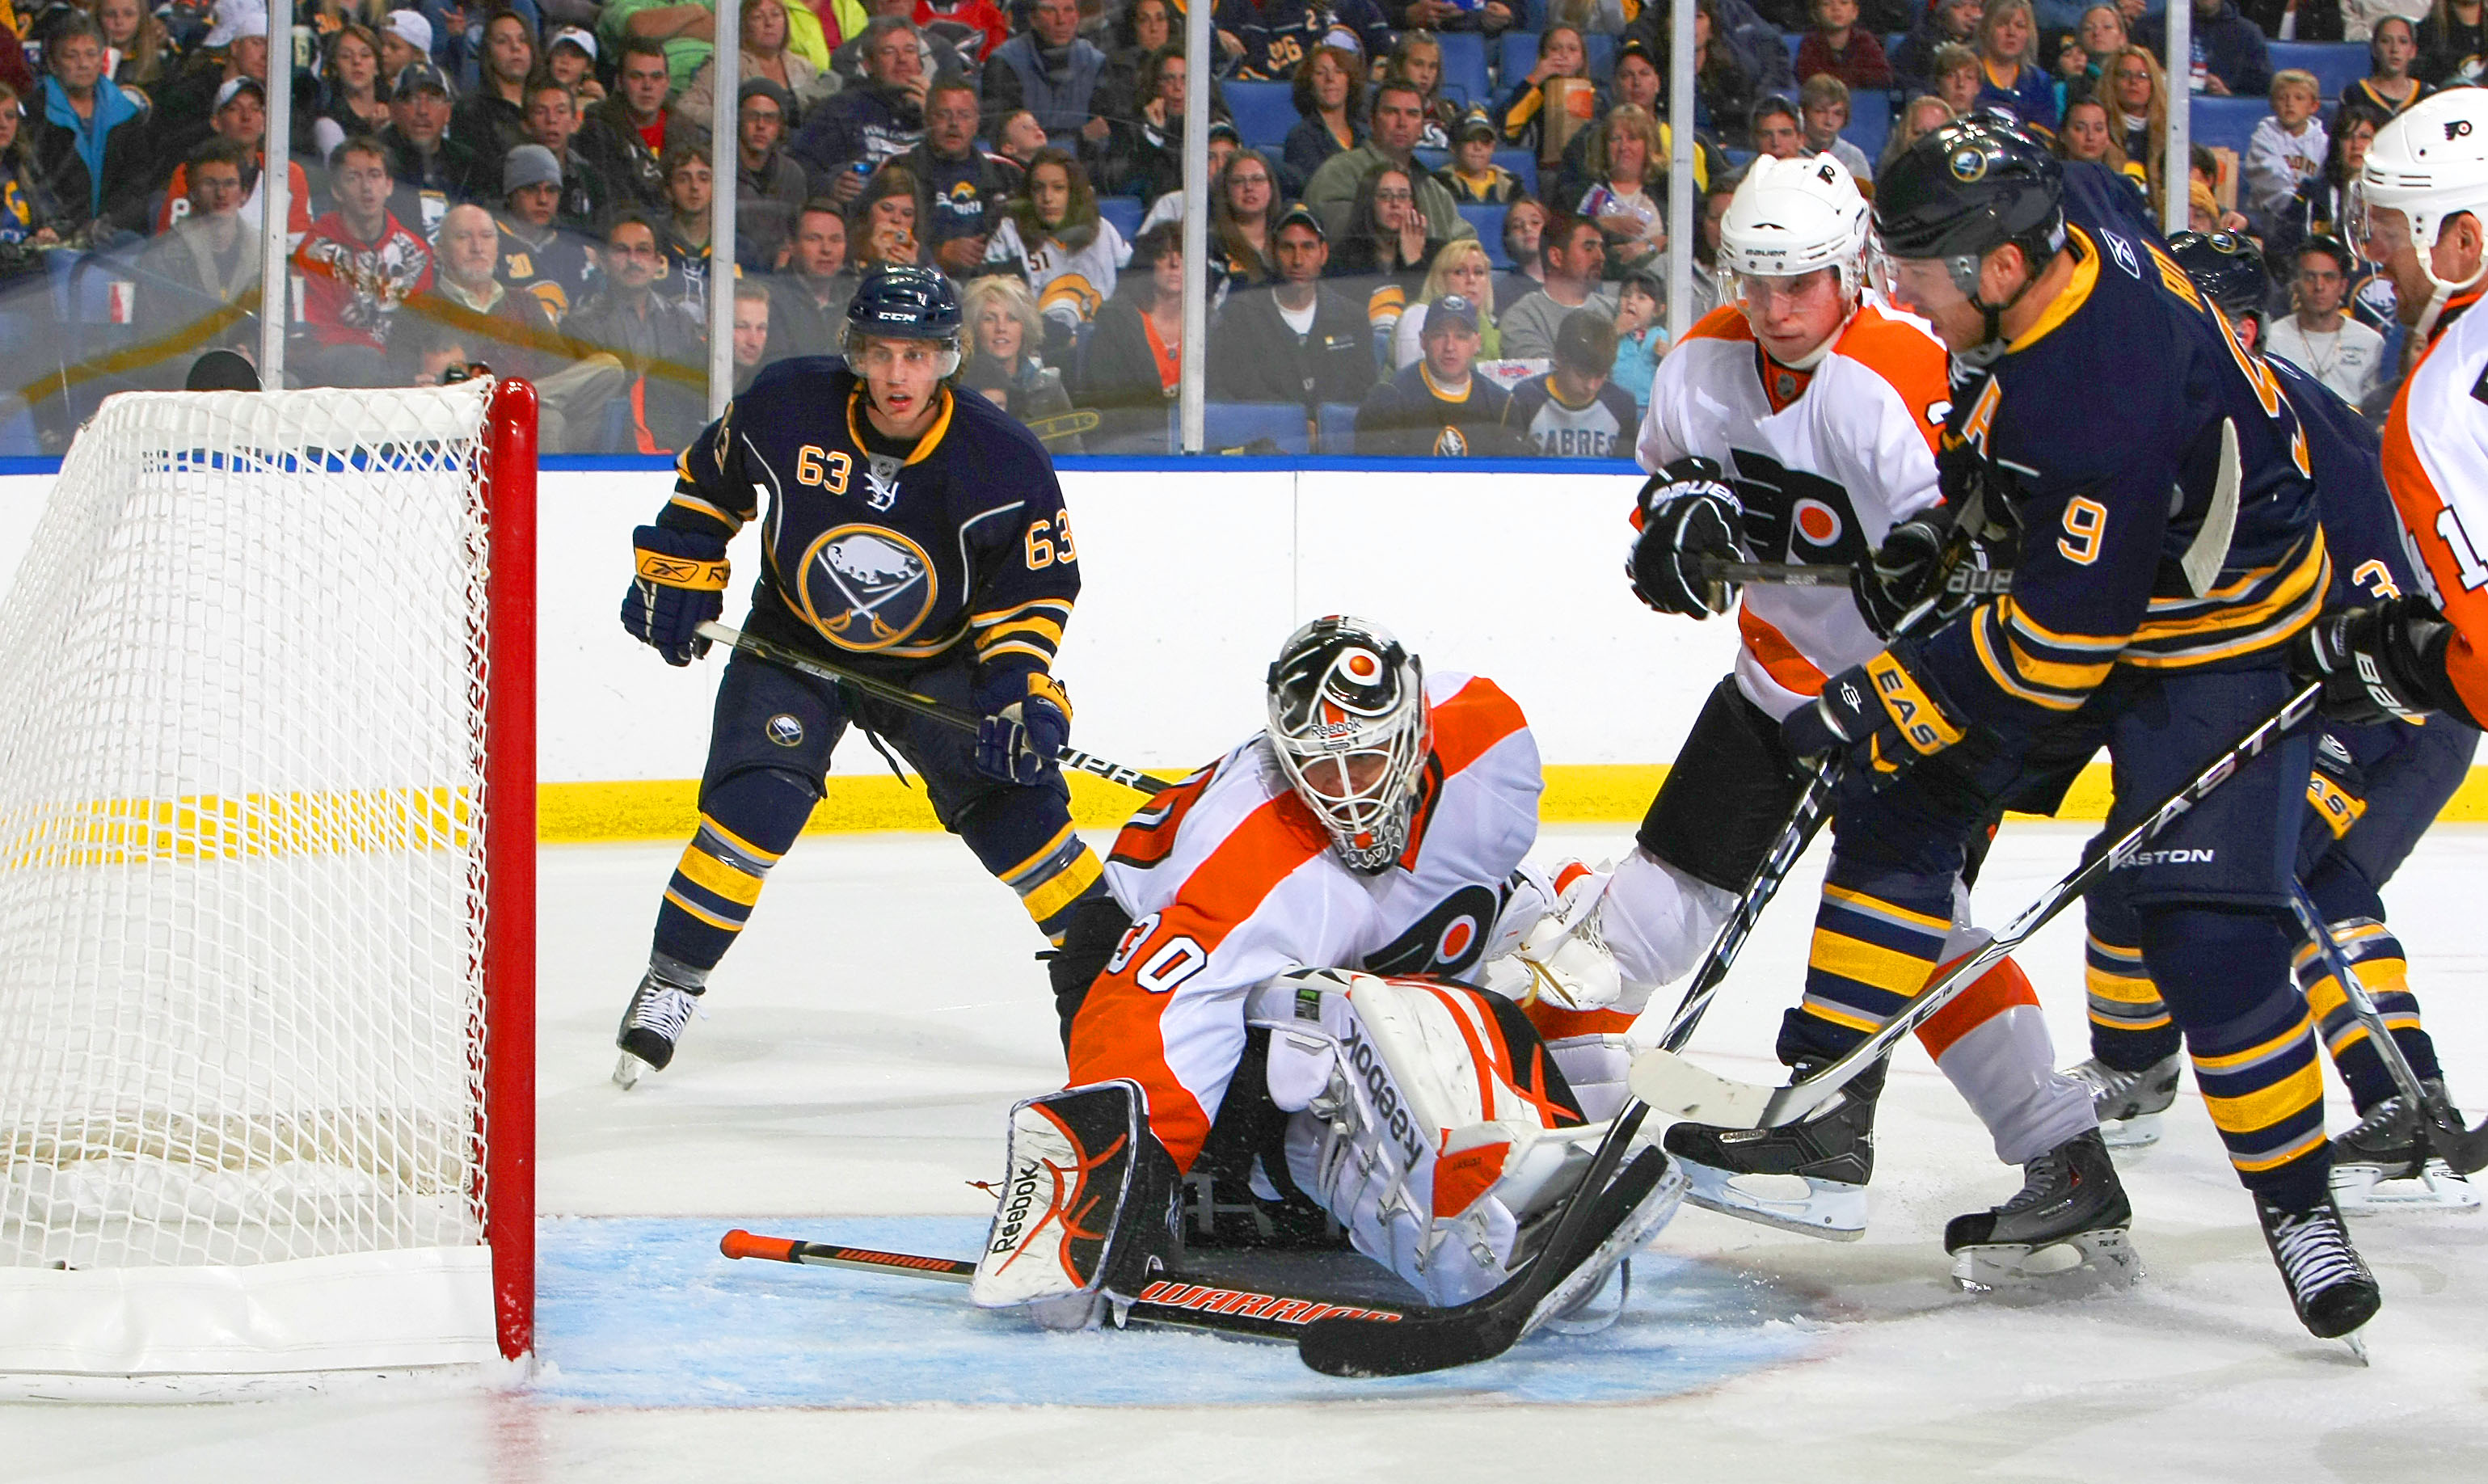 BUFFALO - OCTOBER 3:  Derek Roy #9 of the Buffalo Sabres scores a goal against Johan Backlund #30 of the Philadelphia Flyers as Tyler Ennis #63 of the Buffalo Sabres and Oskars Bartulis #3 of the Philadelphia Flyers both look on during their NHL game at H